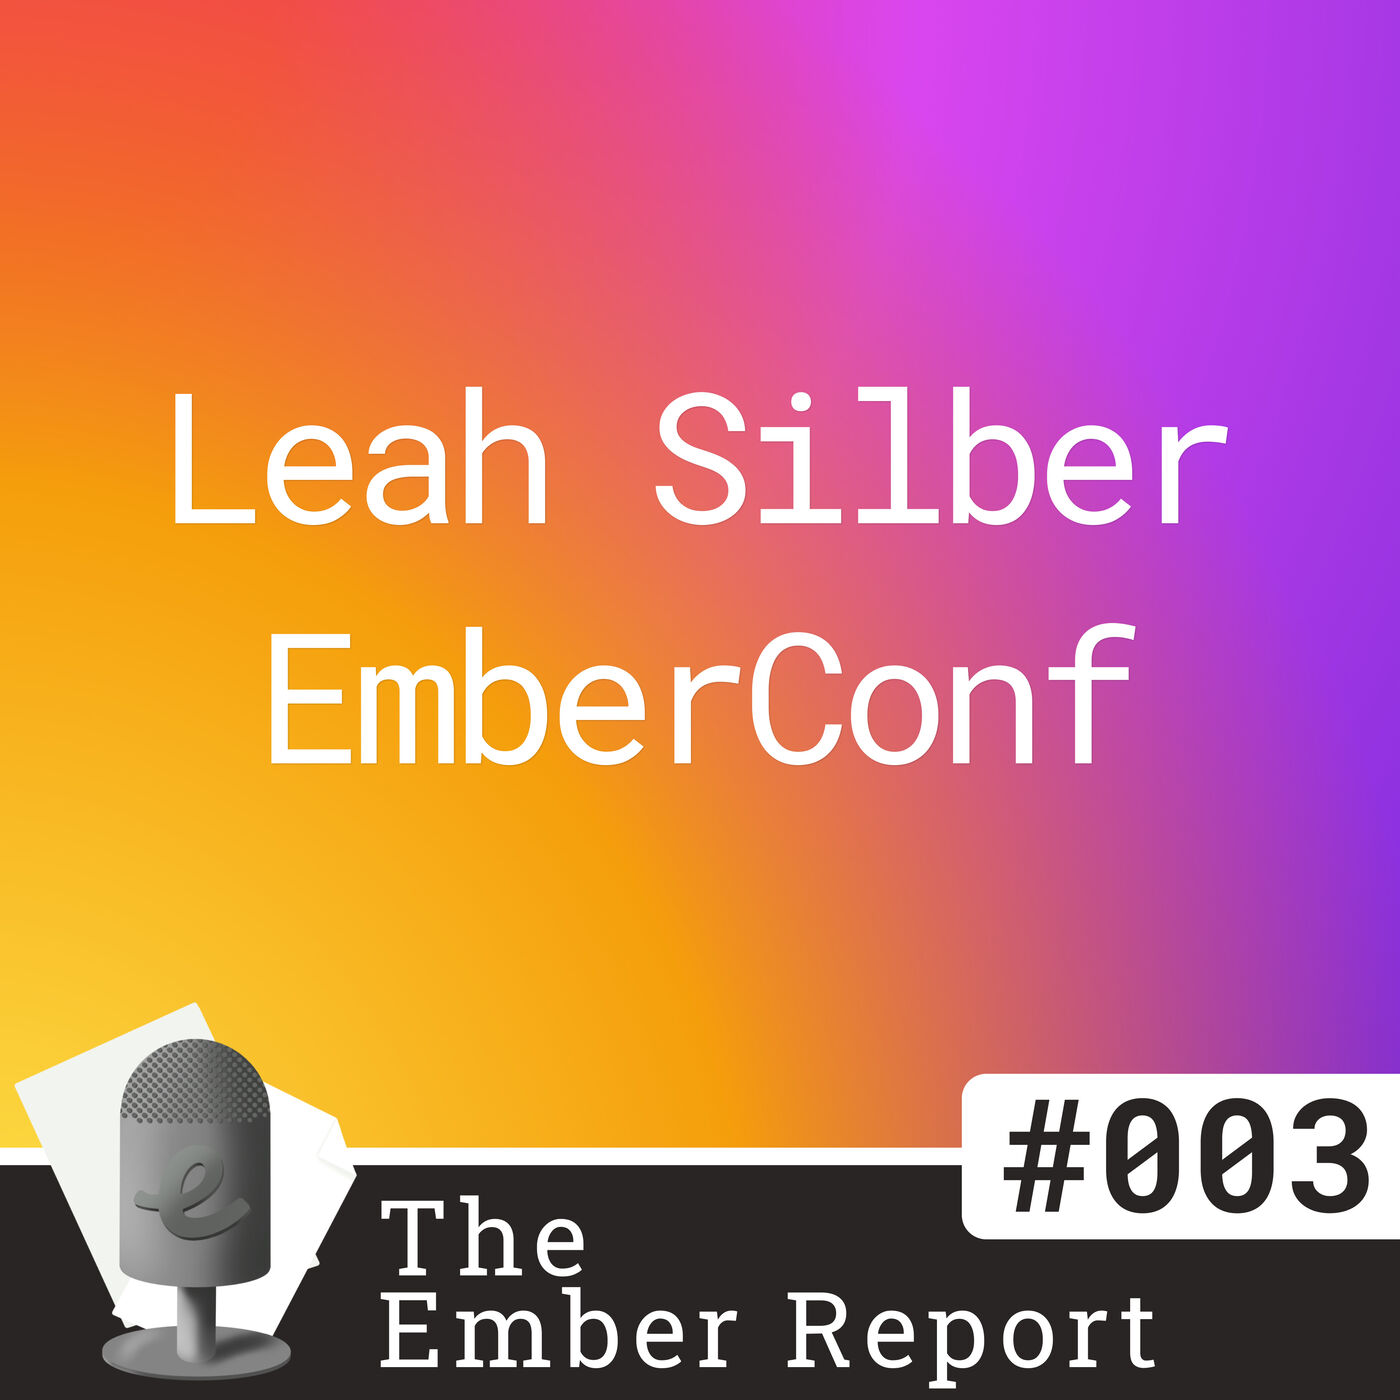 #003: Leah Silber on EmberConf 2021